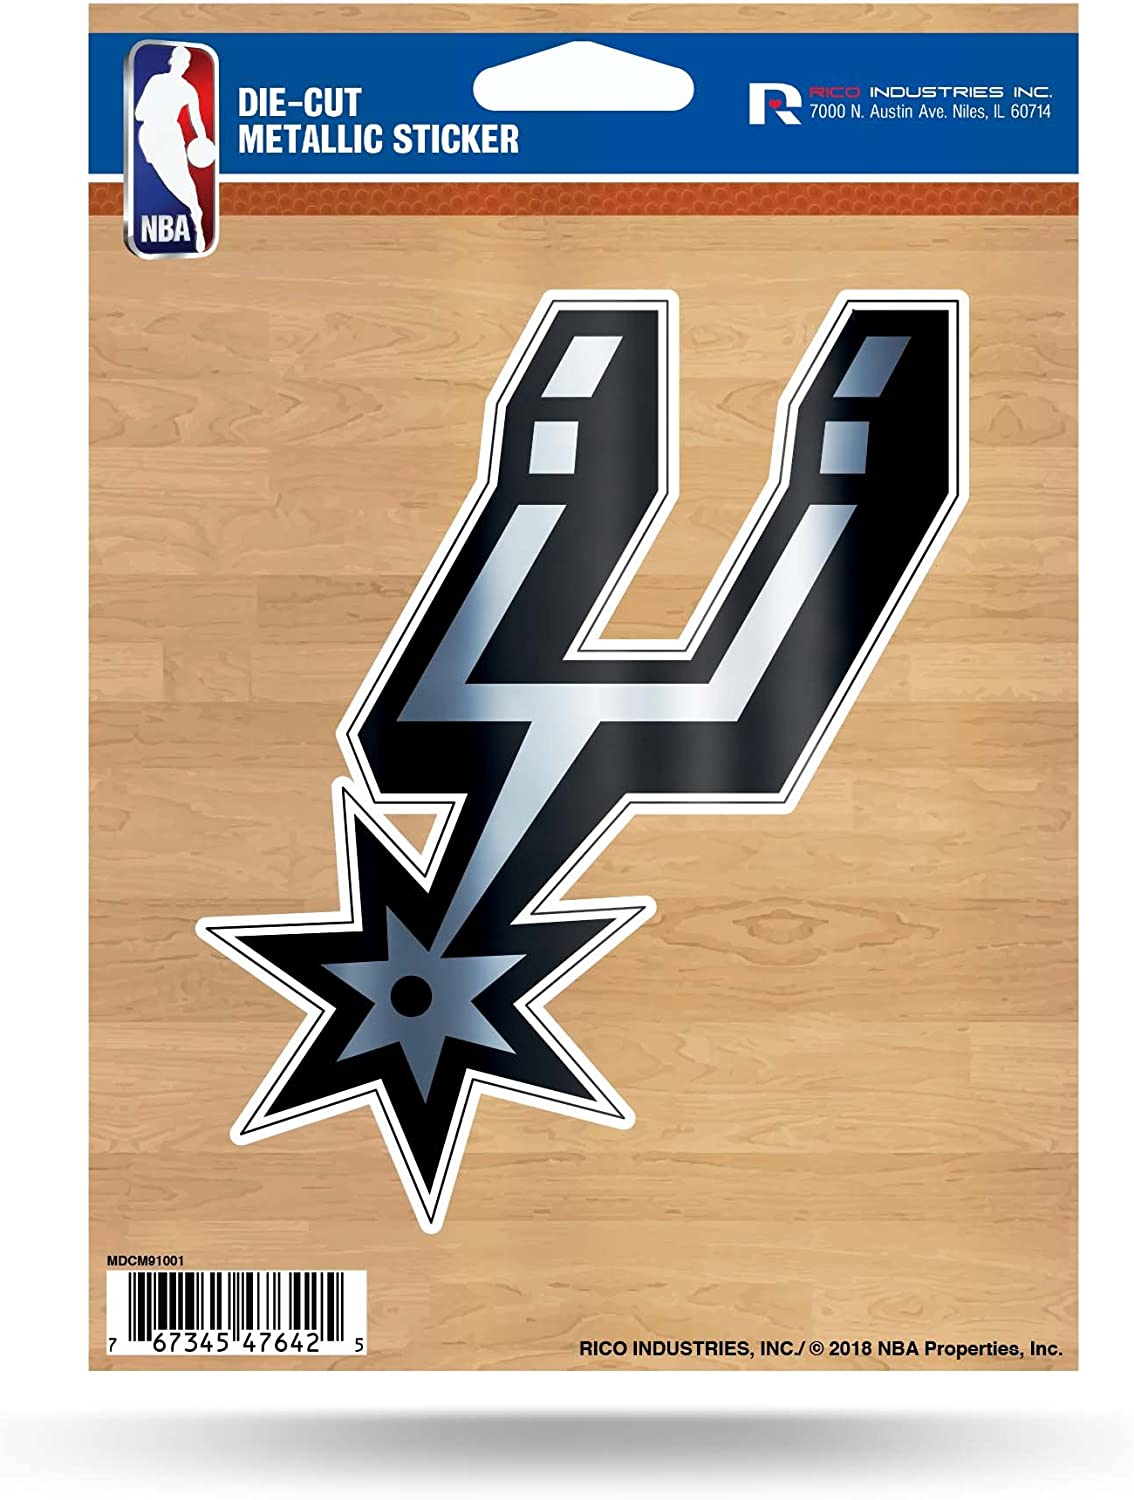 Rico Industries NBA Unisex-Adult Die Cut Metallic Sticker